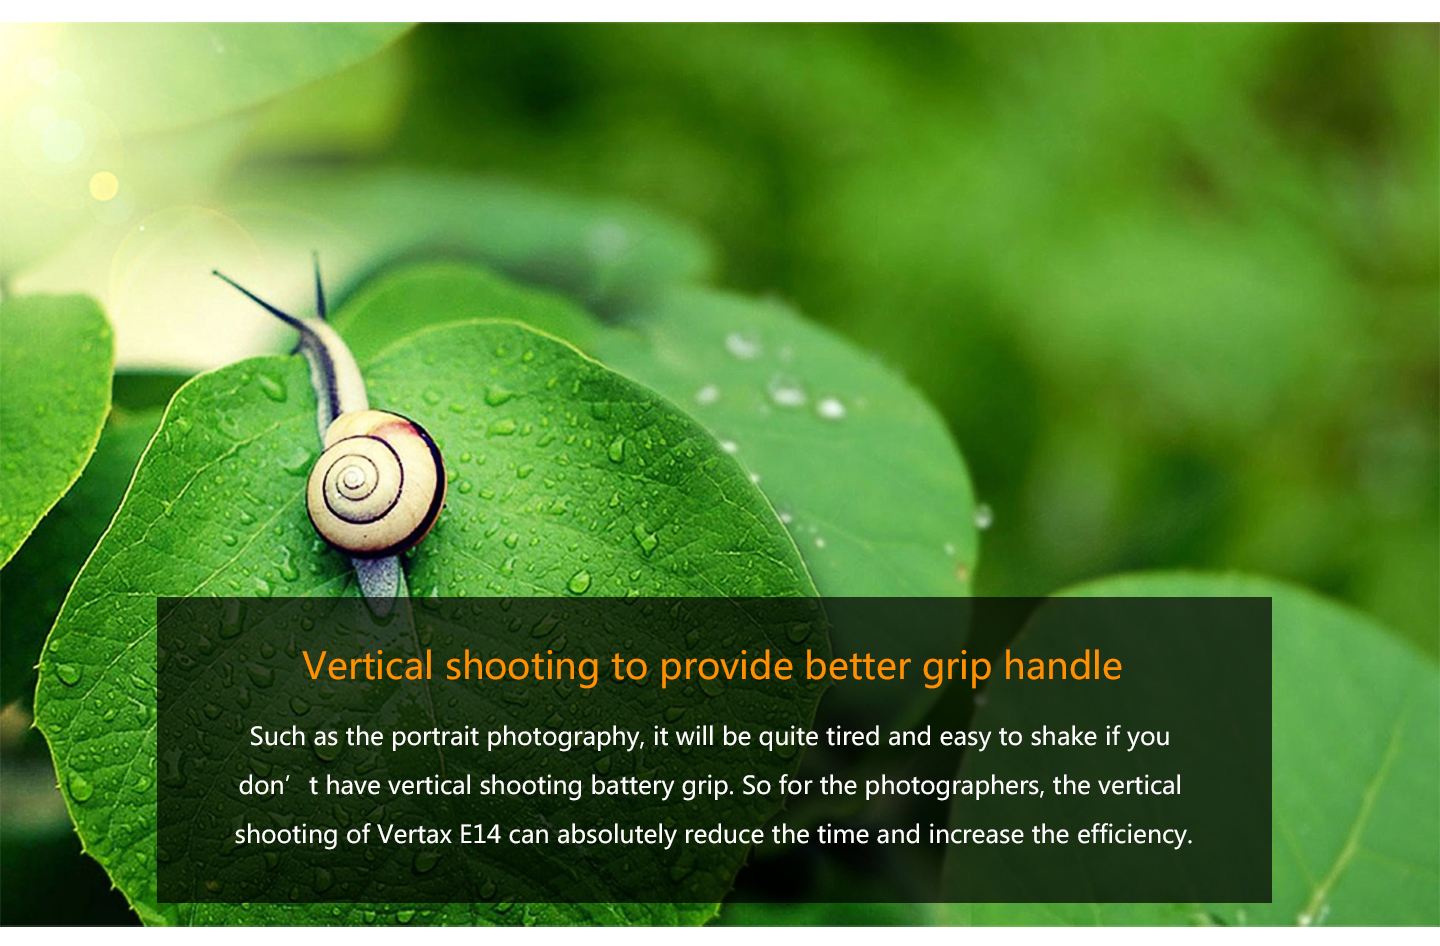 Vertical shooting to provide better grip handle